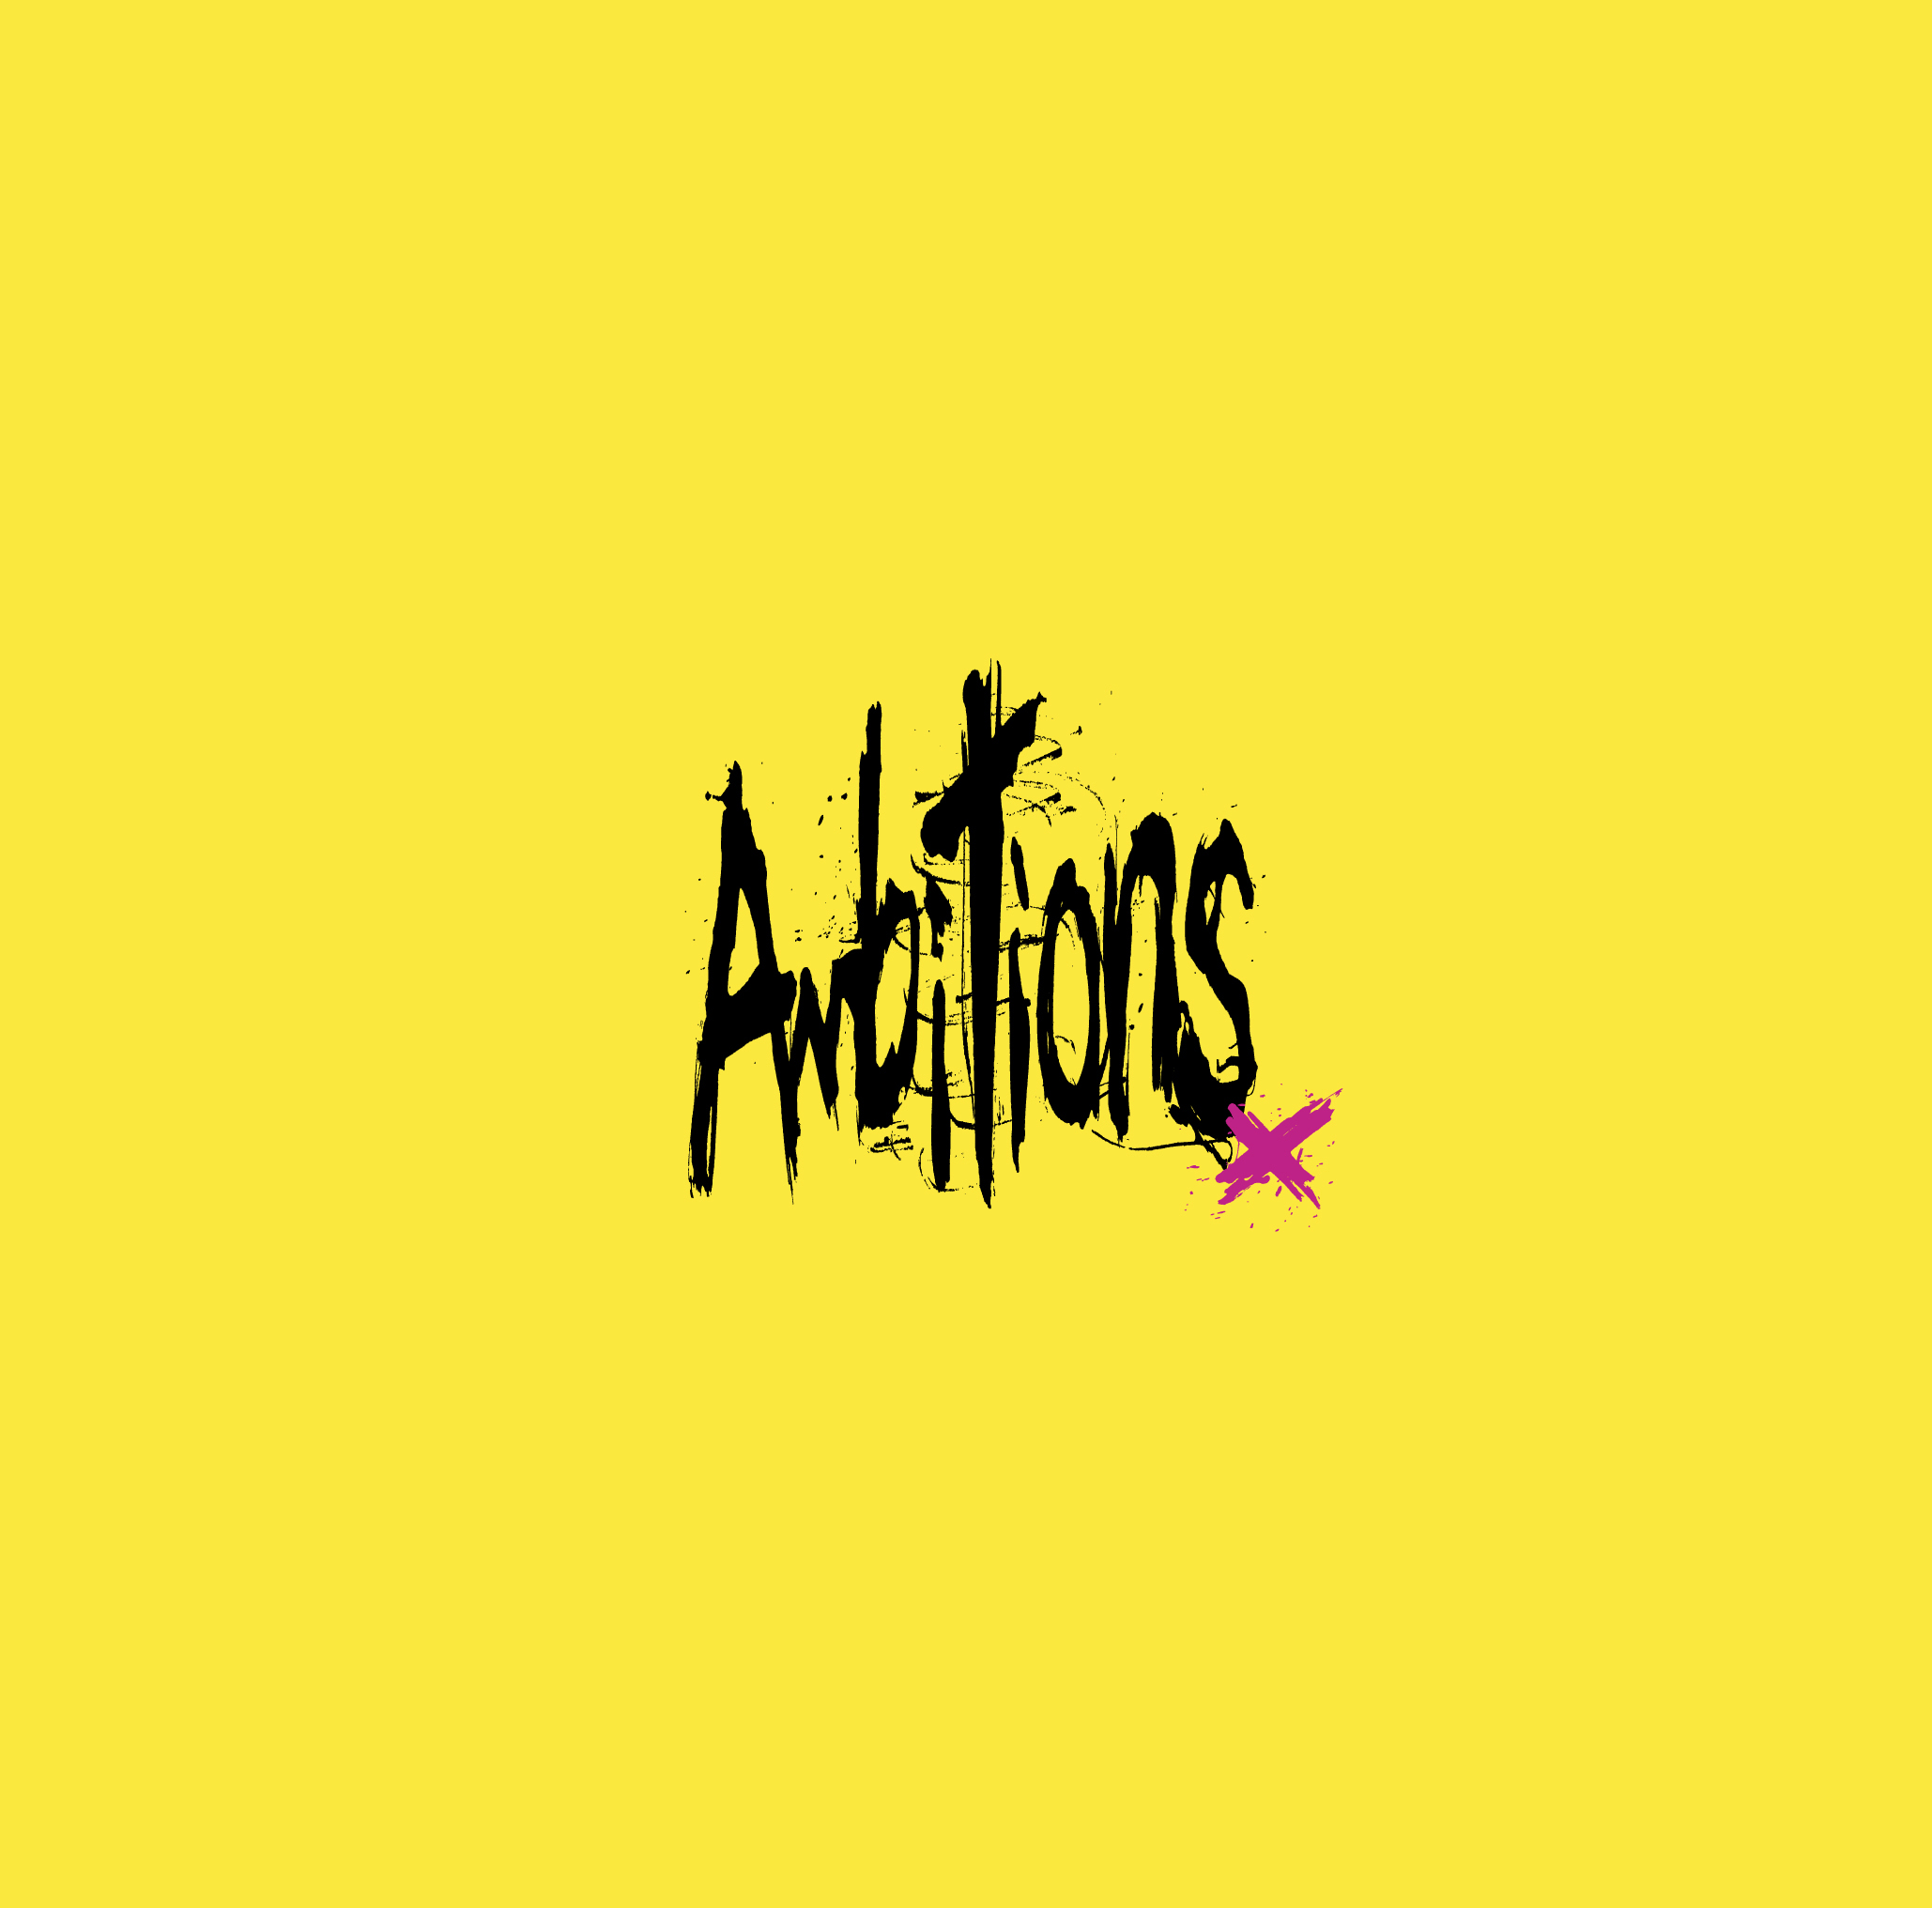 ONE OK ROCK – Ambitions [FLAC / 24bit Lossless / WEB] [2017.01.11]